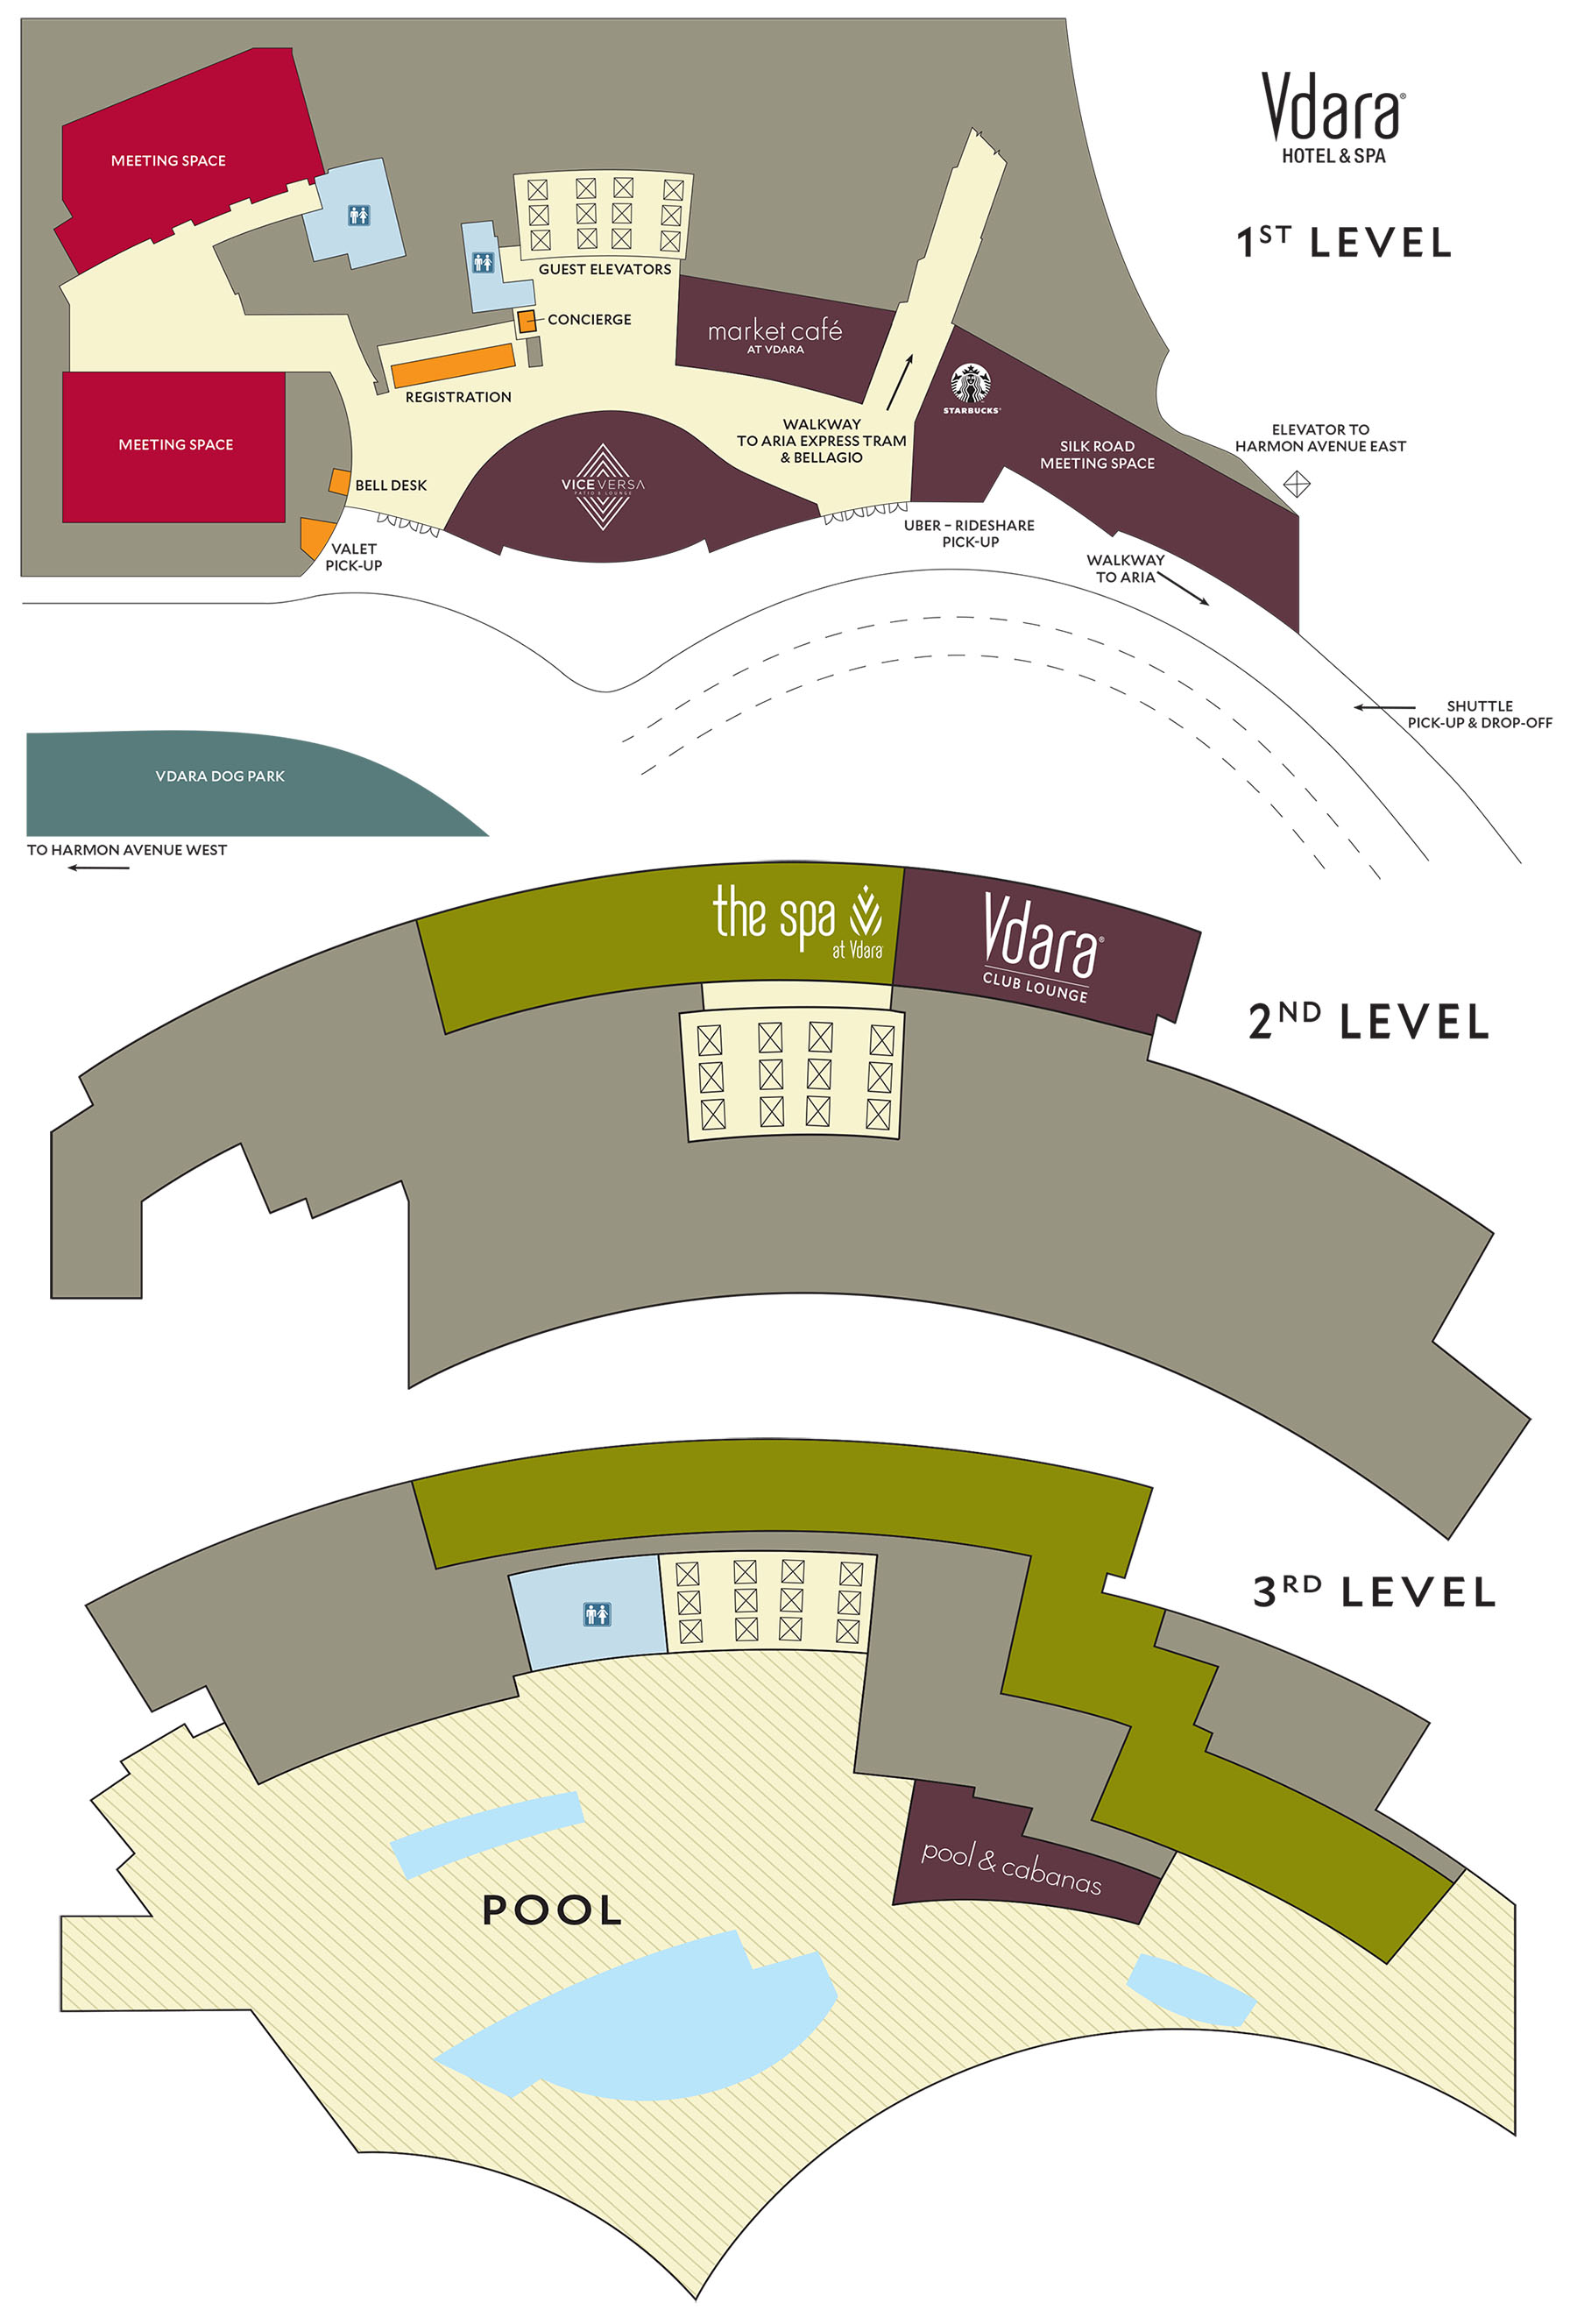 vdara casino property map  u0026 floor plans